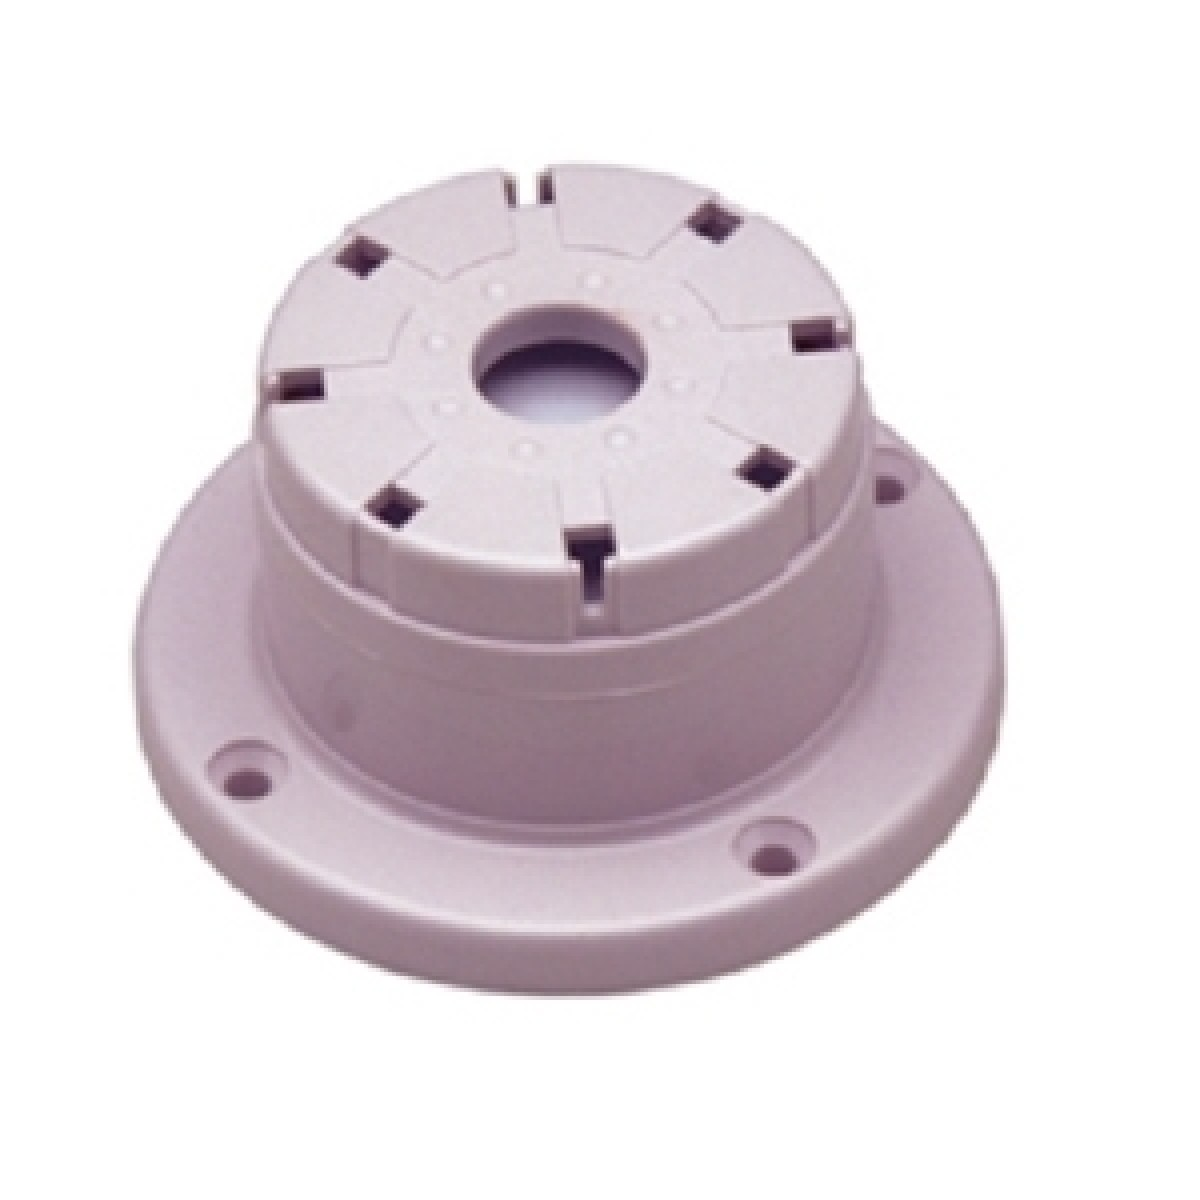 Alarm Accessories S3807 - Piezo Screamer Top Hat